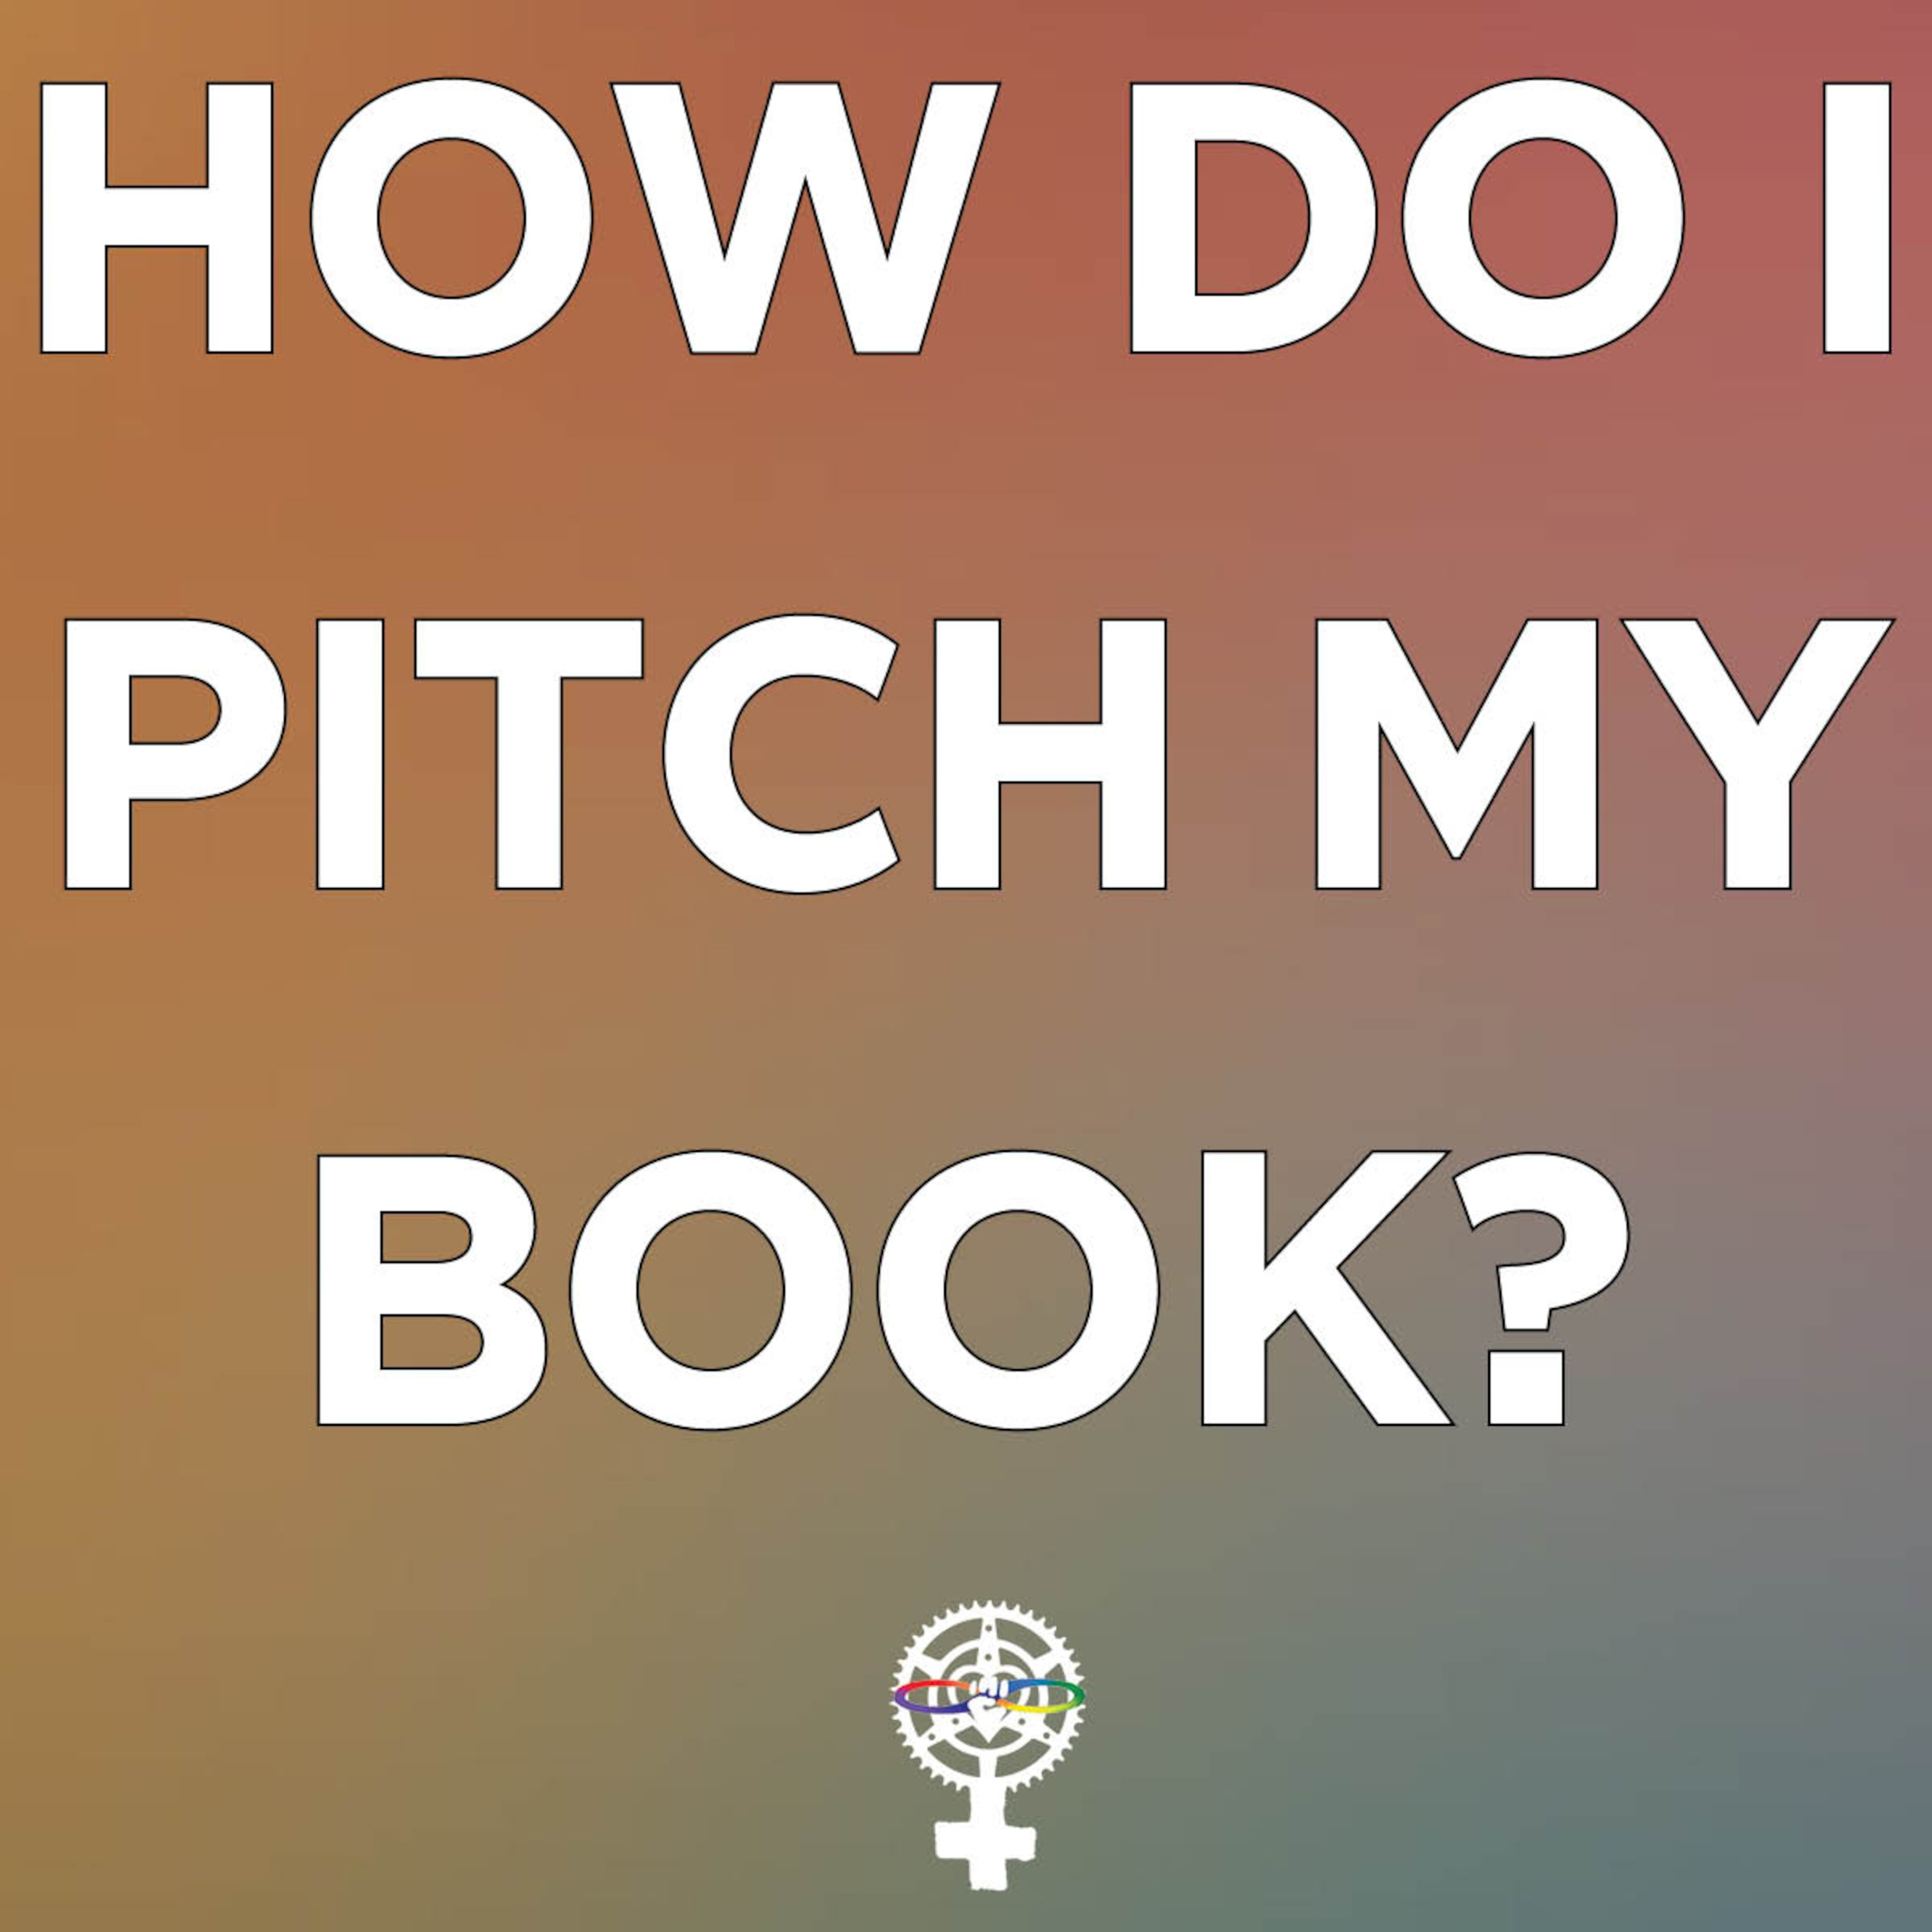 How do I pitch my book?